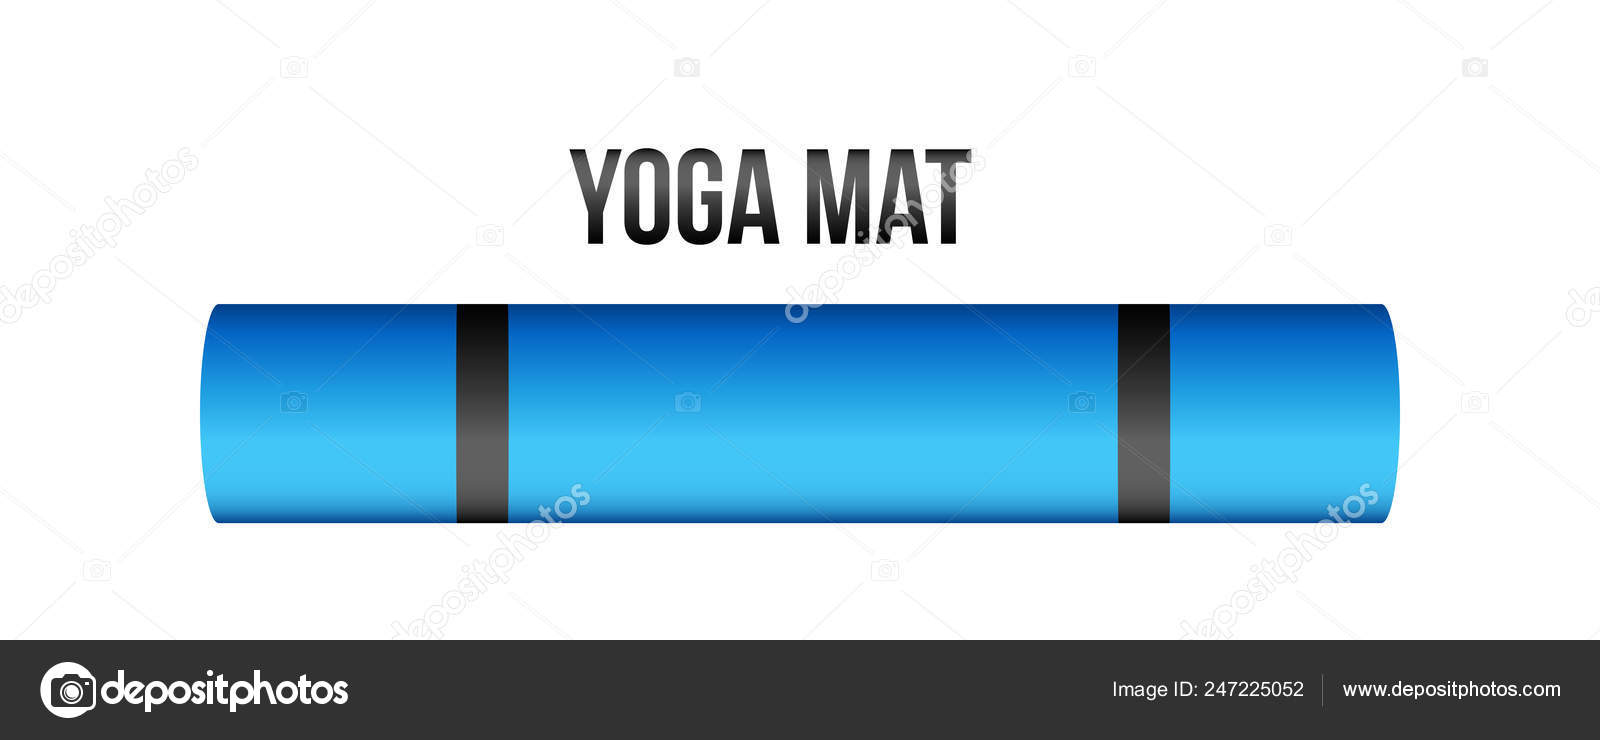 Creative Vector Illustration Of Half Rolled Yoga Mat Isolated On Transparent Background Art Design Fitness And Health Template Abstract Concept Graphic Pilates Exercise Equipment Element Stock Vector C Mikhail Grachikov 247225052